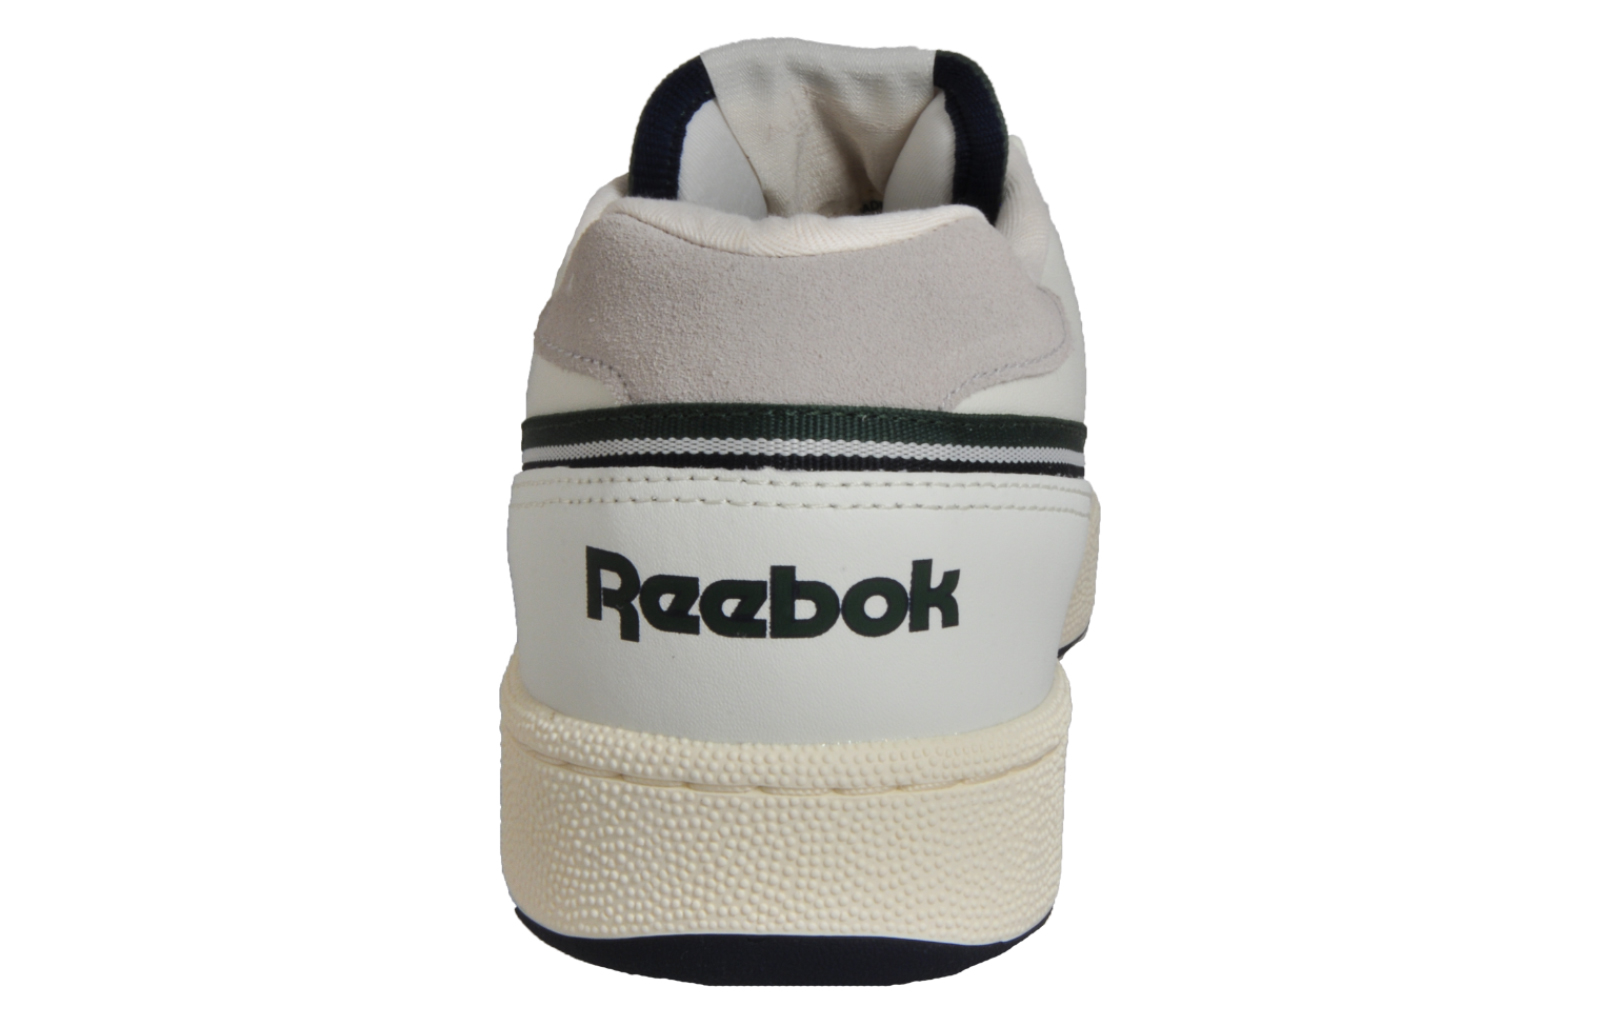 e6a1f1d02761a Reebok Classic Act 600 THOF Men s Casual Retro Fashion Trainers